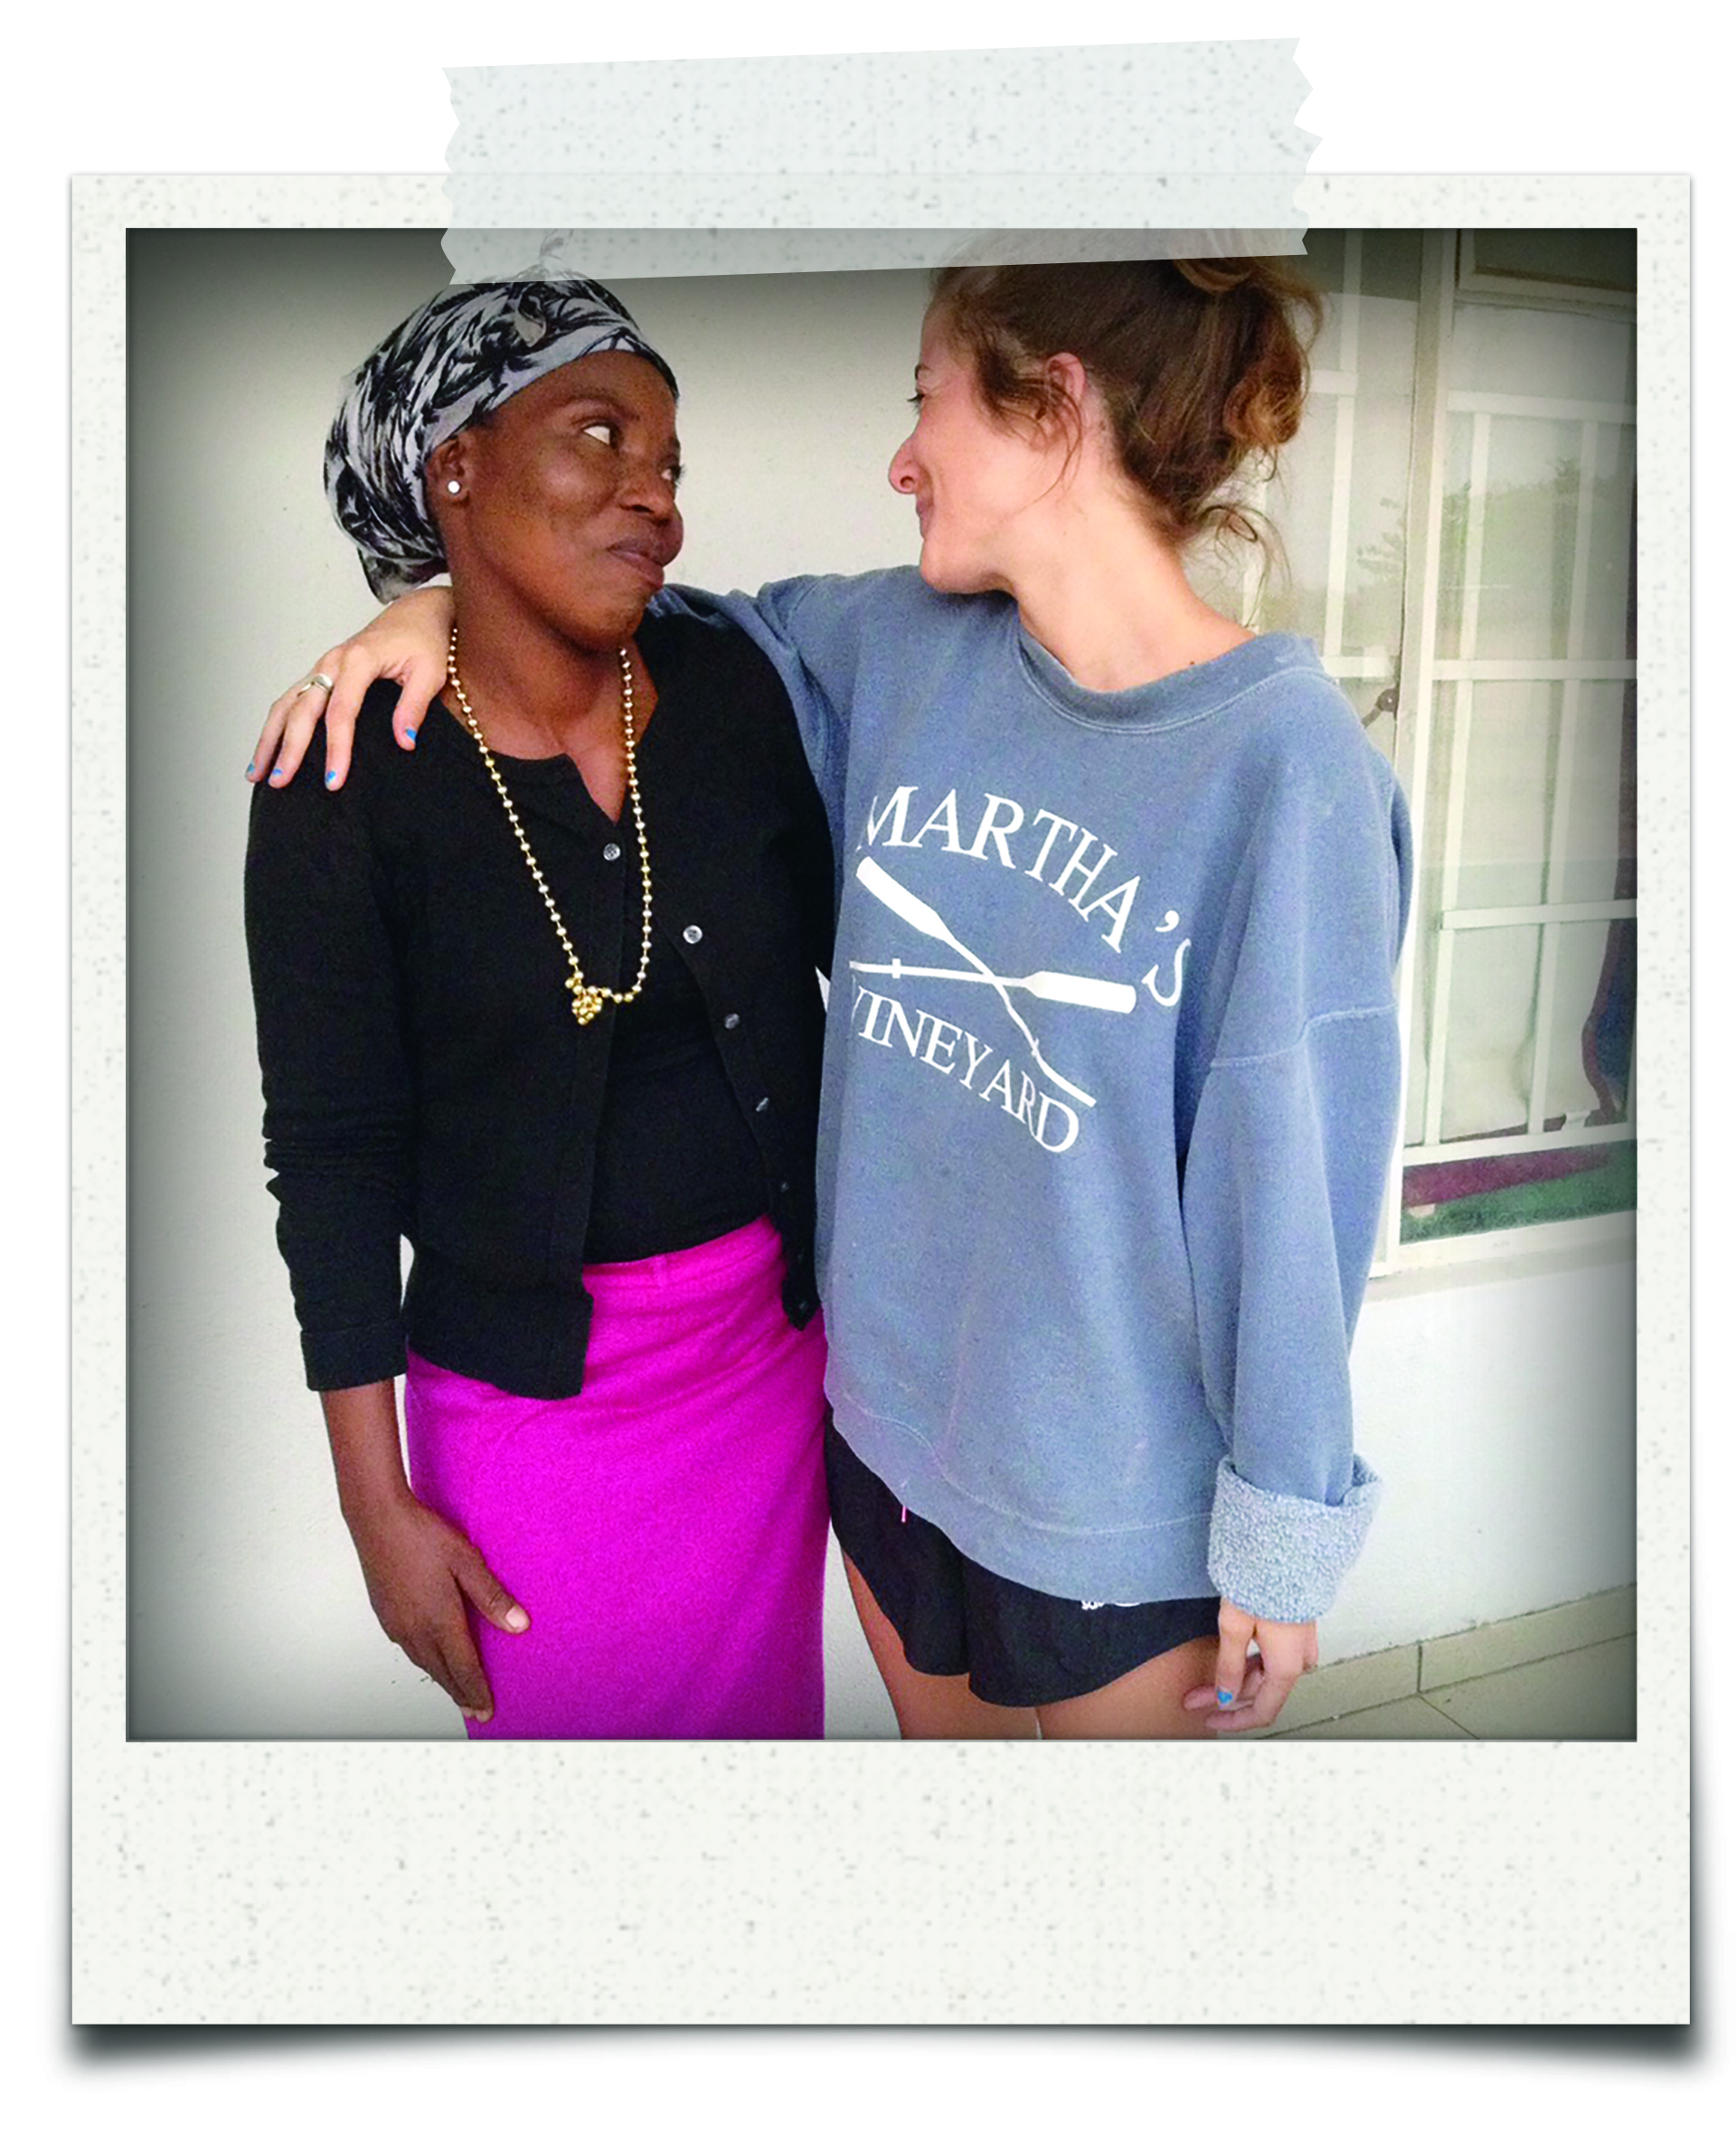 Goodwin befriended Nancy, the driver of her taxi, within the first week of her arrival in Botswana, forming a close friendship. The two partnered to carry out local public service announcements on HIV testing and other reproductive healthcare resources for villagers.